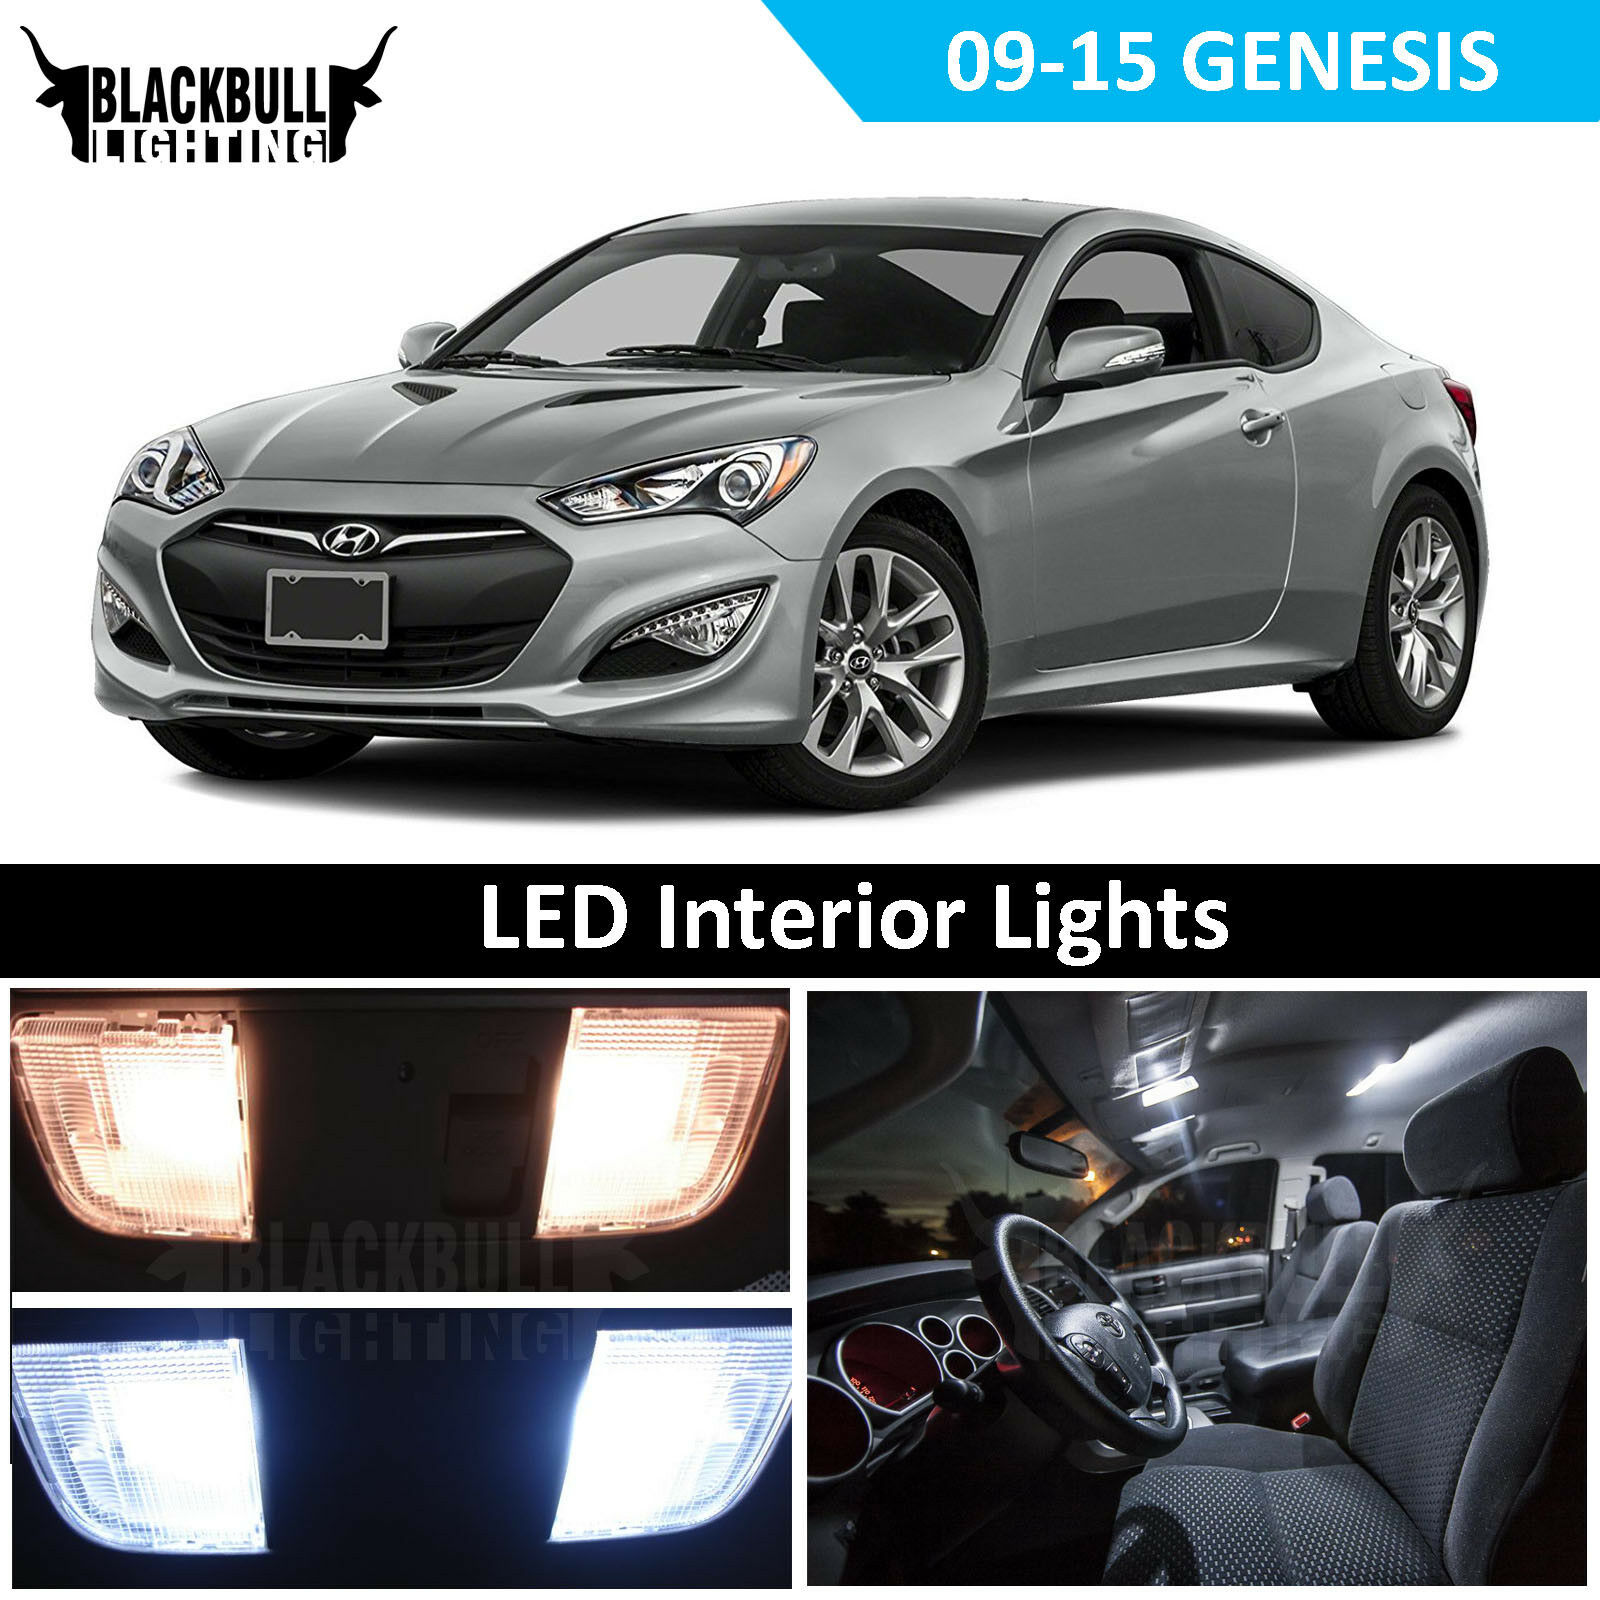 Details About White Led Interior Light Replacement Kit For 2010 2016 Hyundai Genesis Coupe